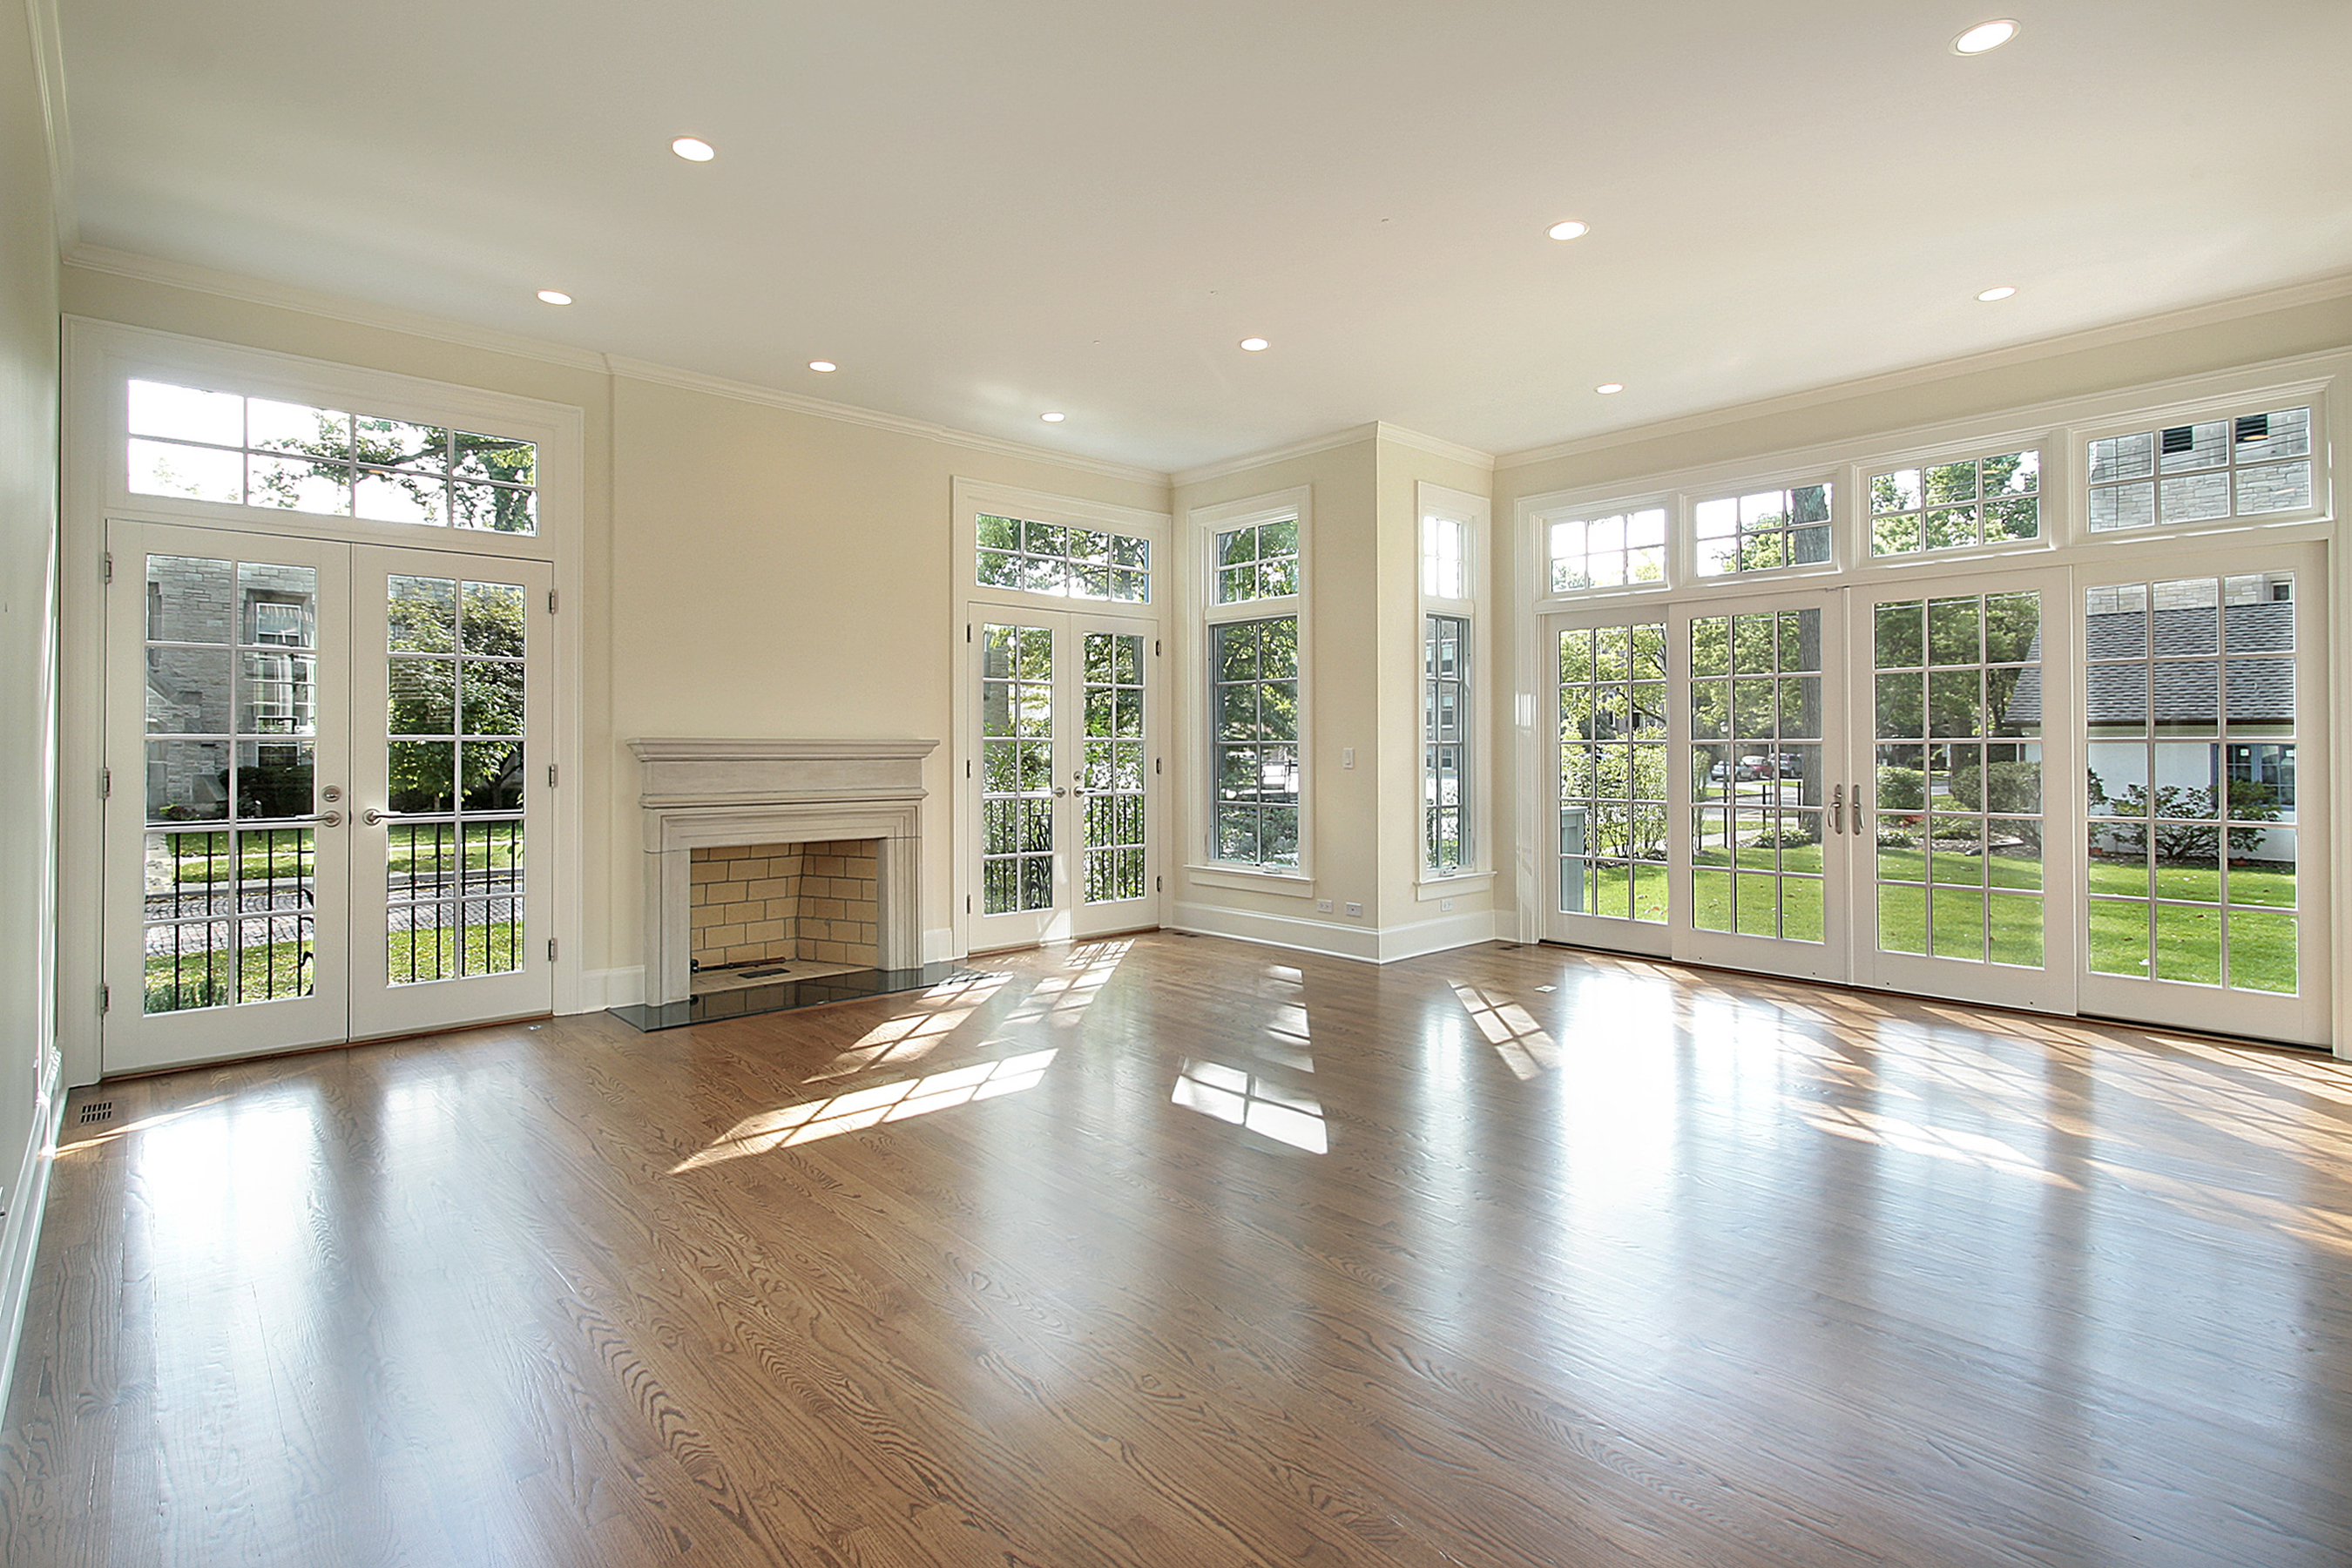 windows_white_room_hardwood_floors_fireplace_Joesfav_Depositphotos_8682707_original